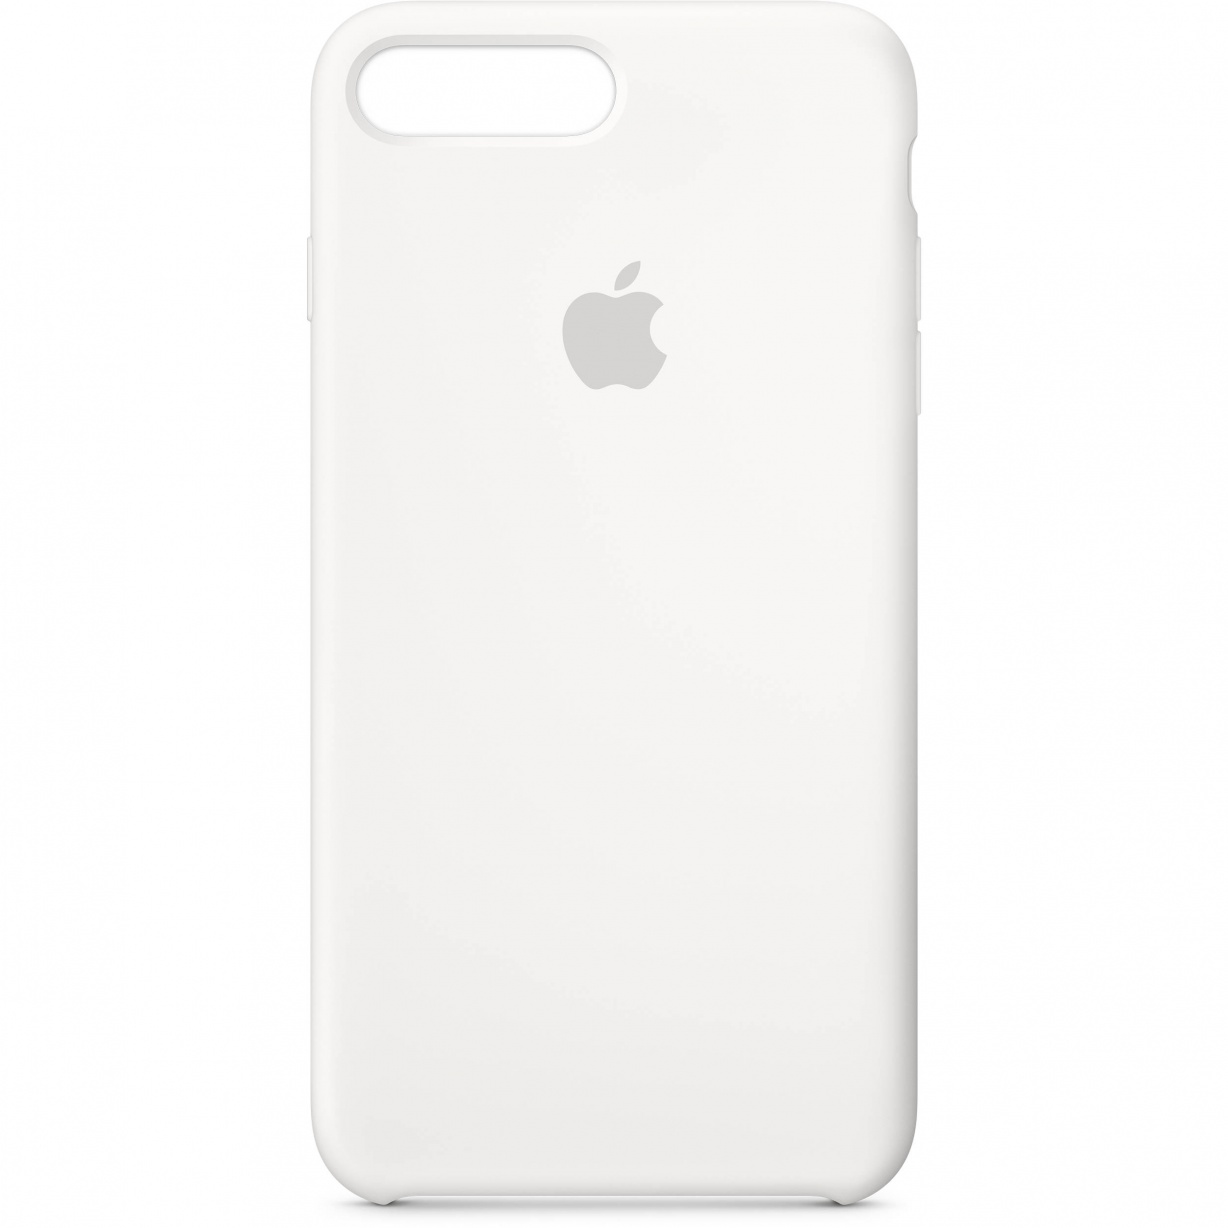 Nugarėlė Apple iPhone 7 Plus/8 Plus Silicone Case White